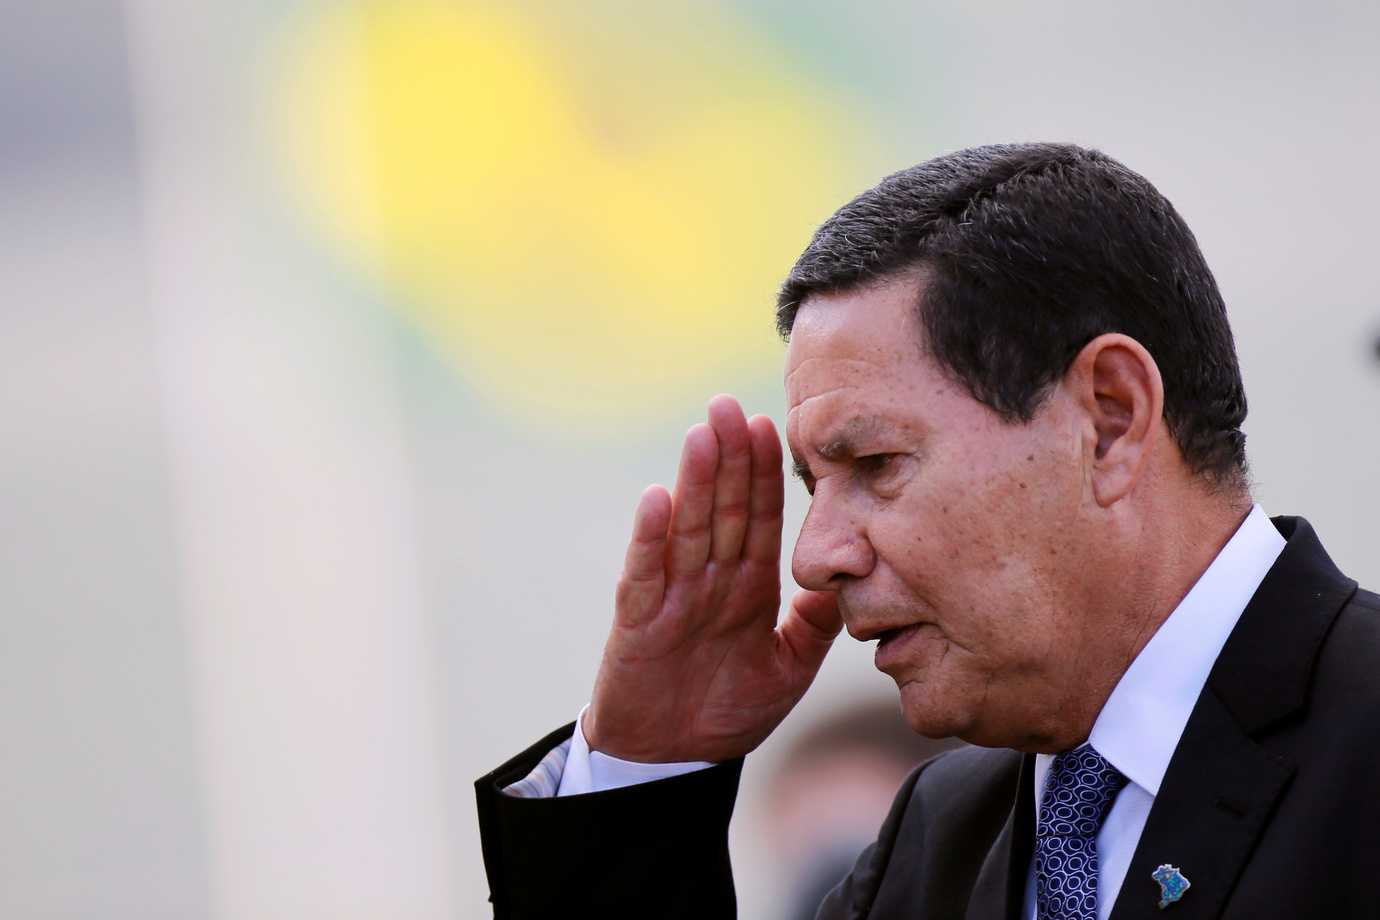 Brazil's Vice President Hamilton Mourao gestures during a ceremony outside the Planalto Palace in Brasilia